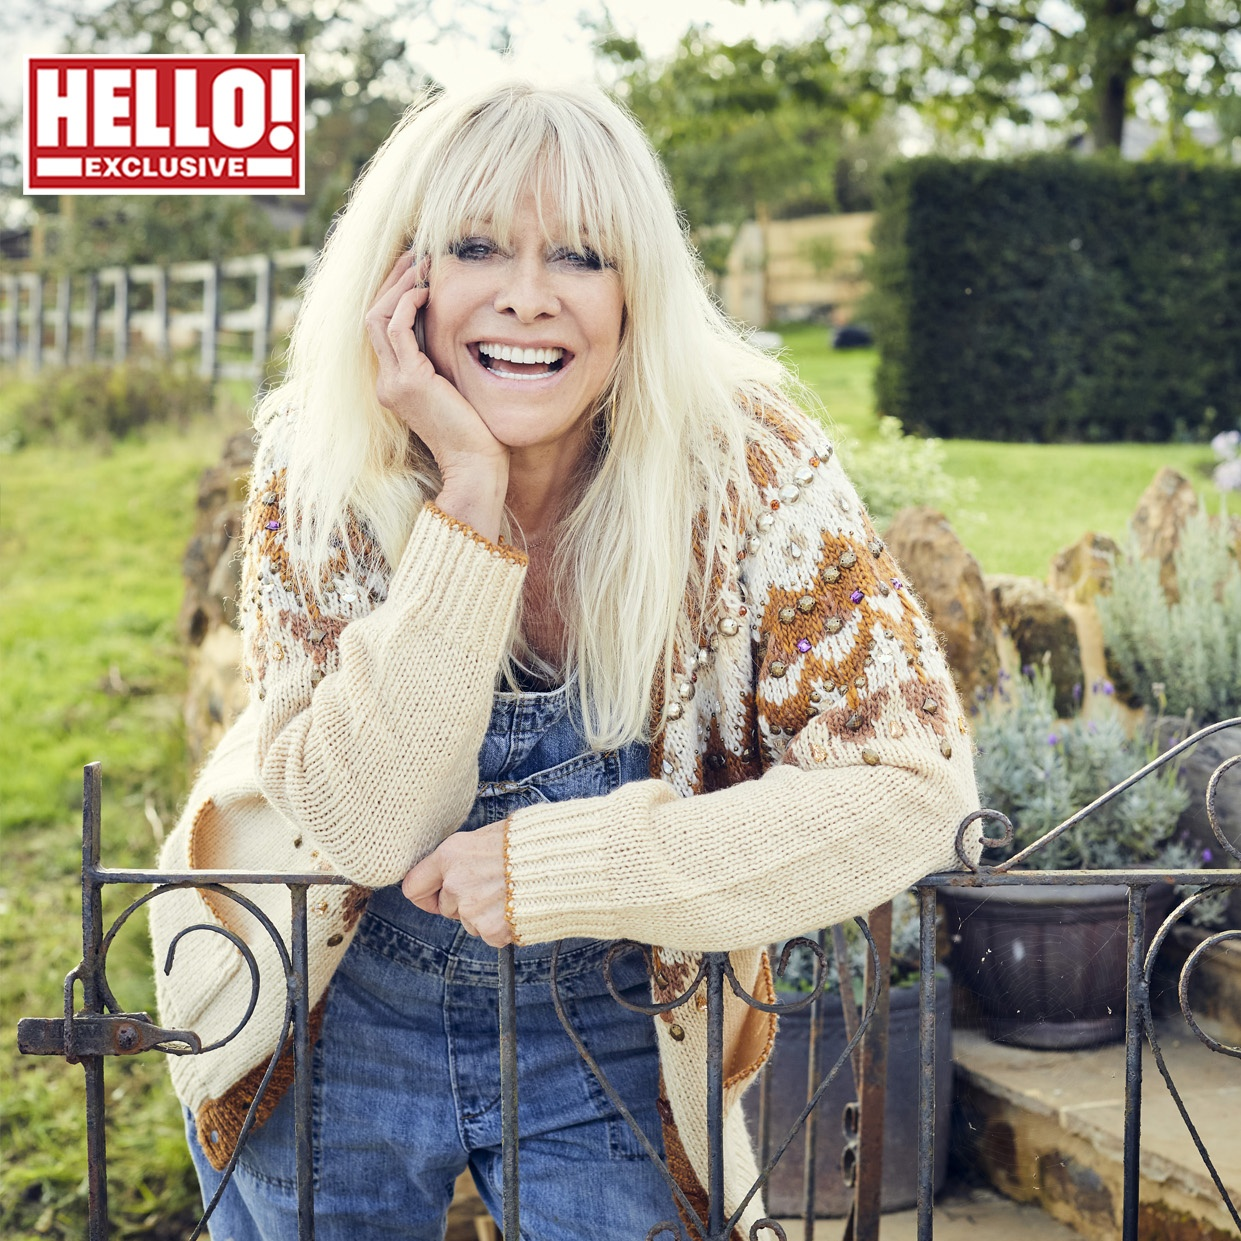 Im happy as I am - Jo Wood not looking for love right